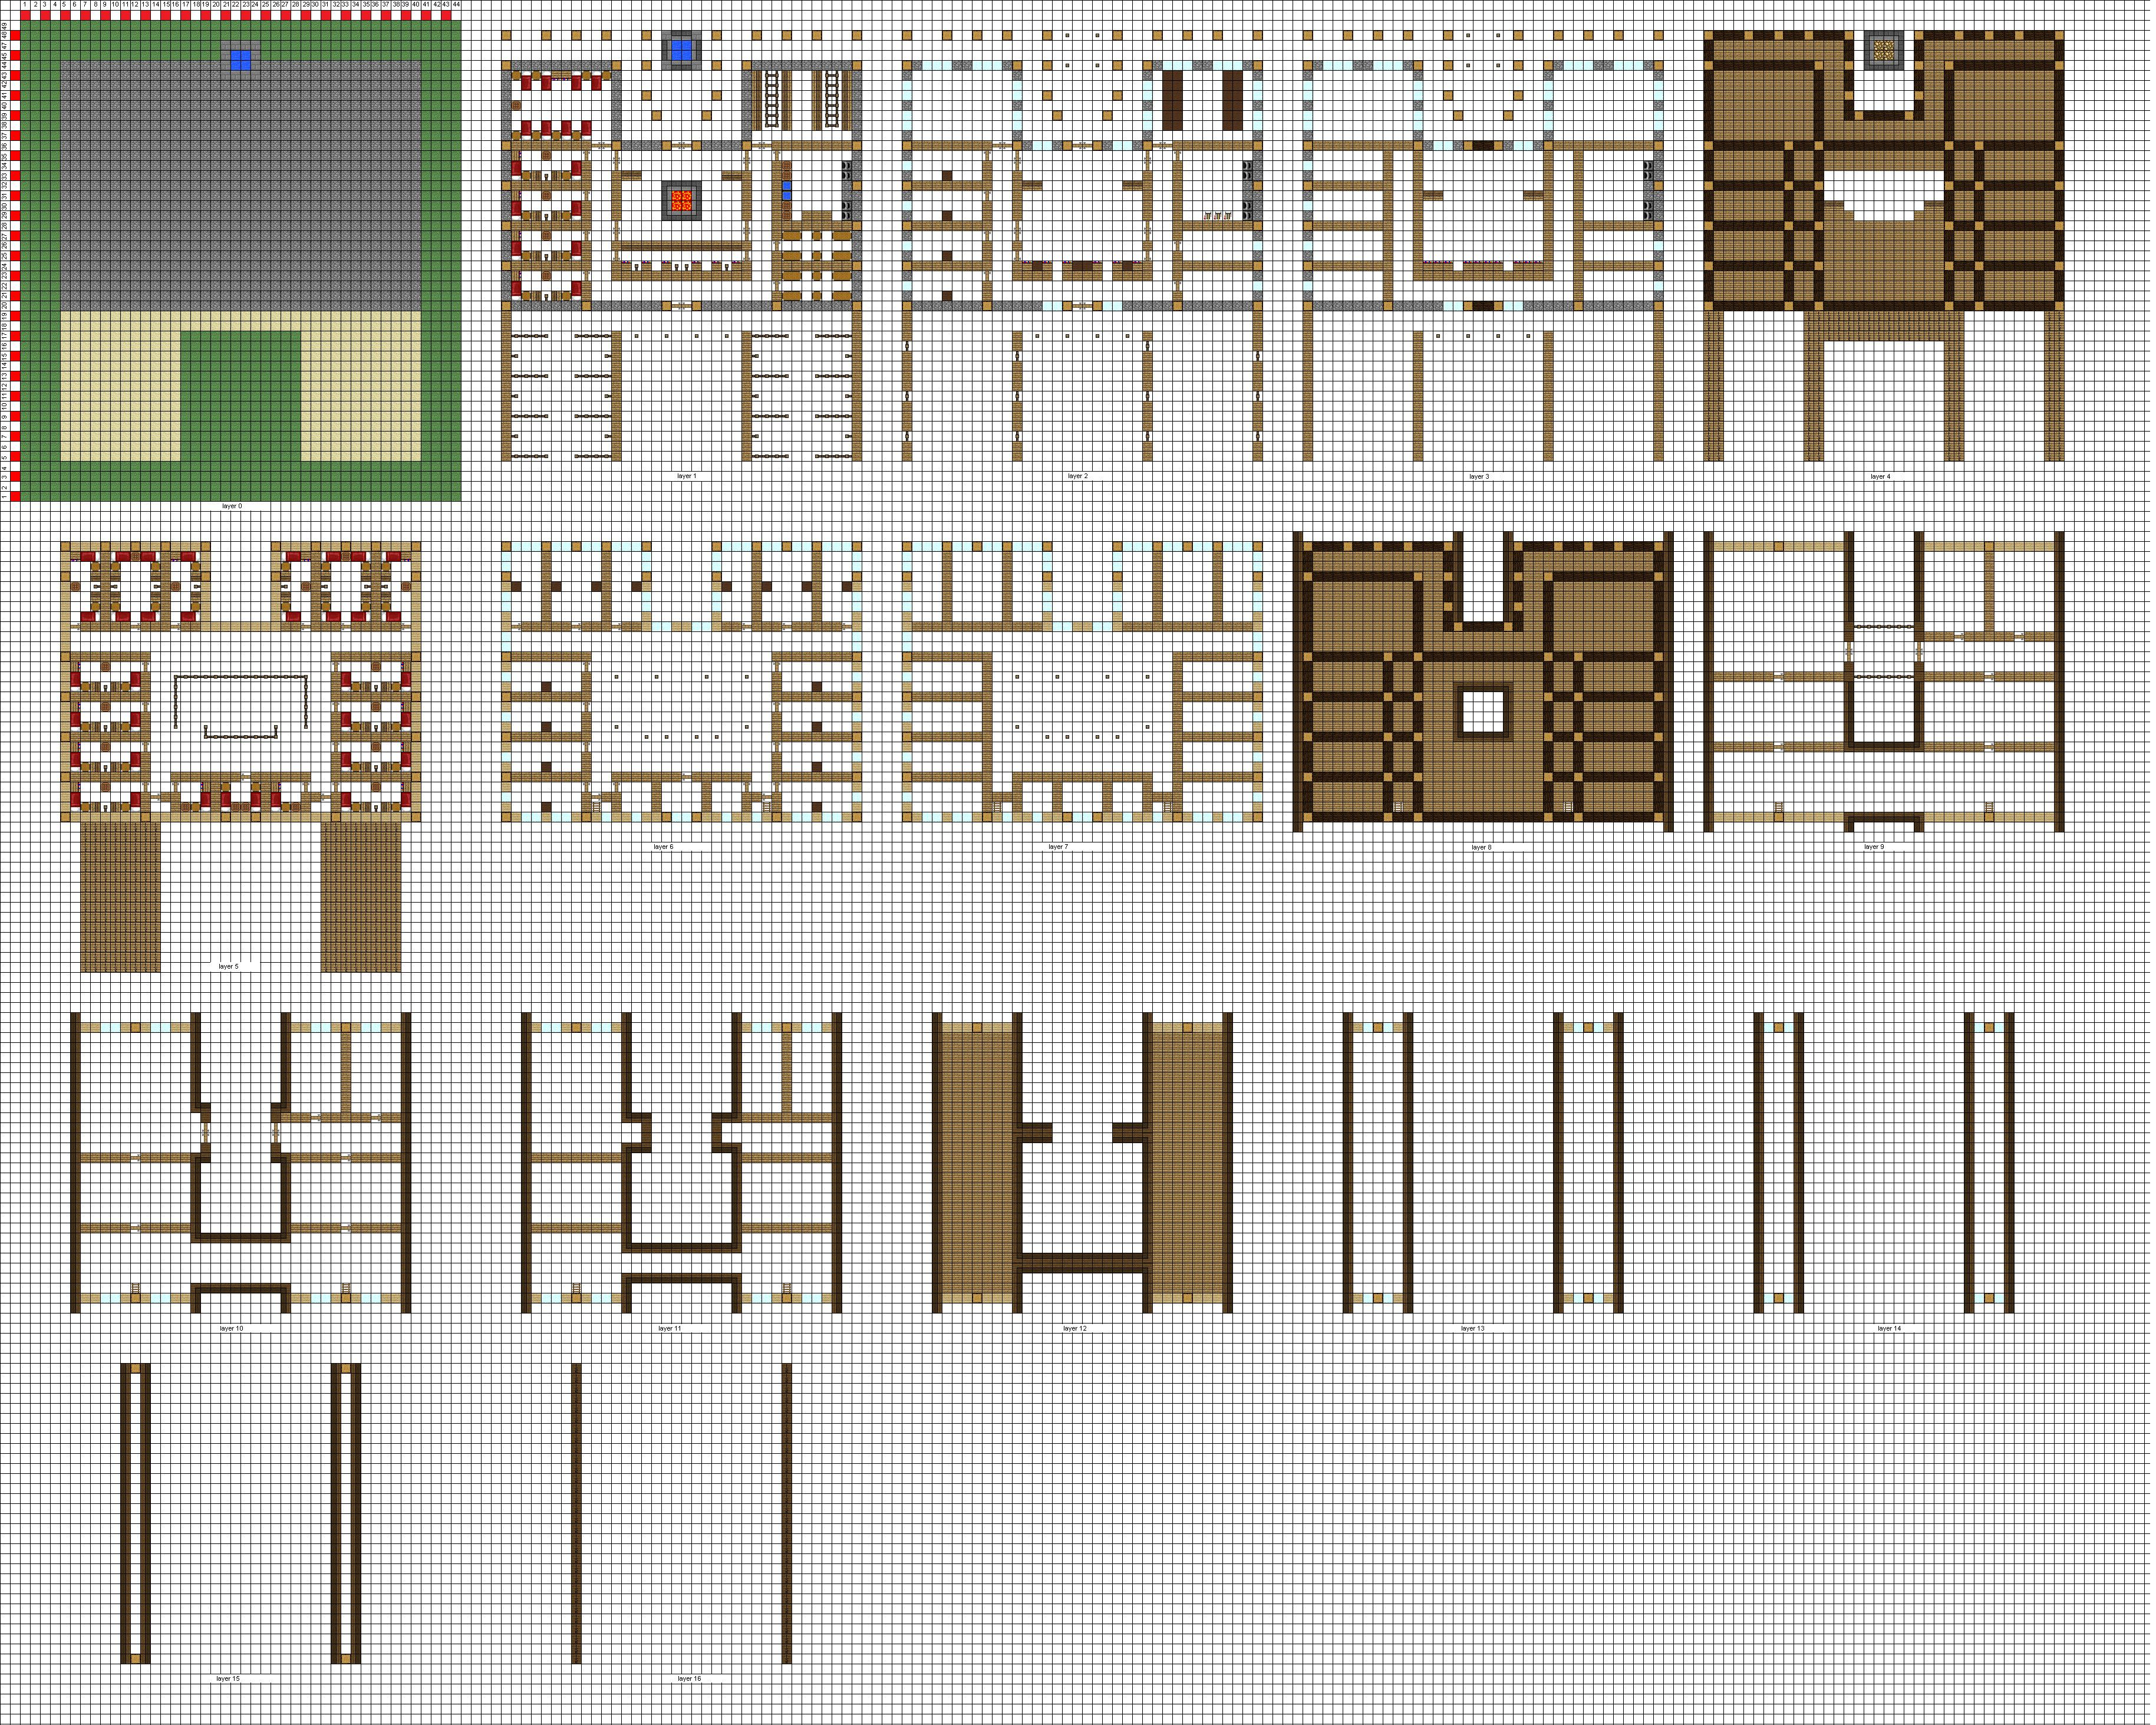 Minecraft large Inn floorplans WiP by ColtCoyote on DeviantArt